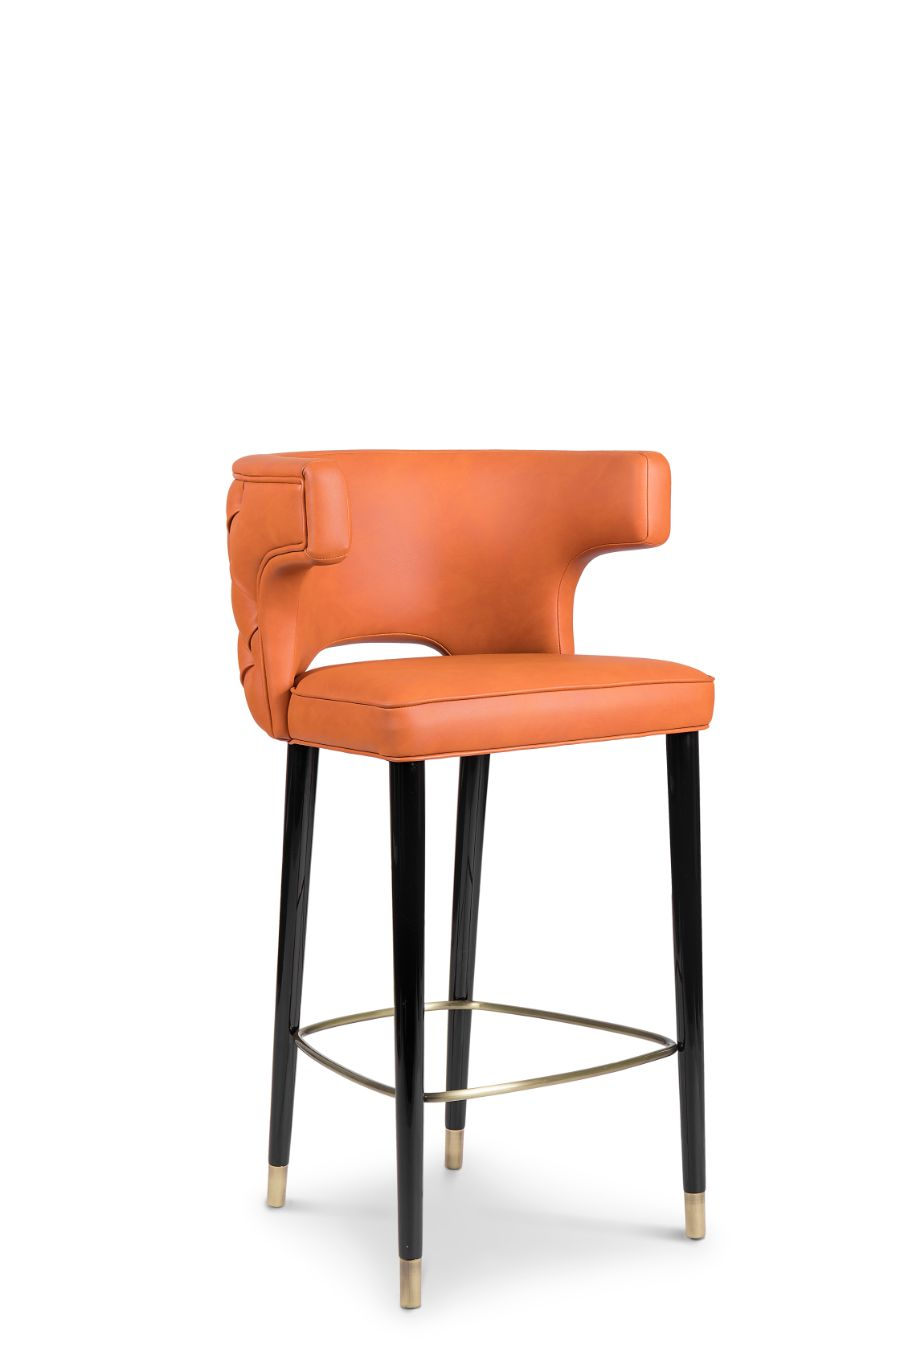 Bar Chairs: 25 Fiercely Designed Chairs that Influence Design Trends